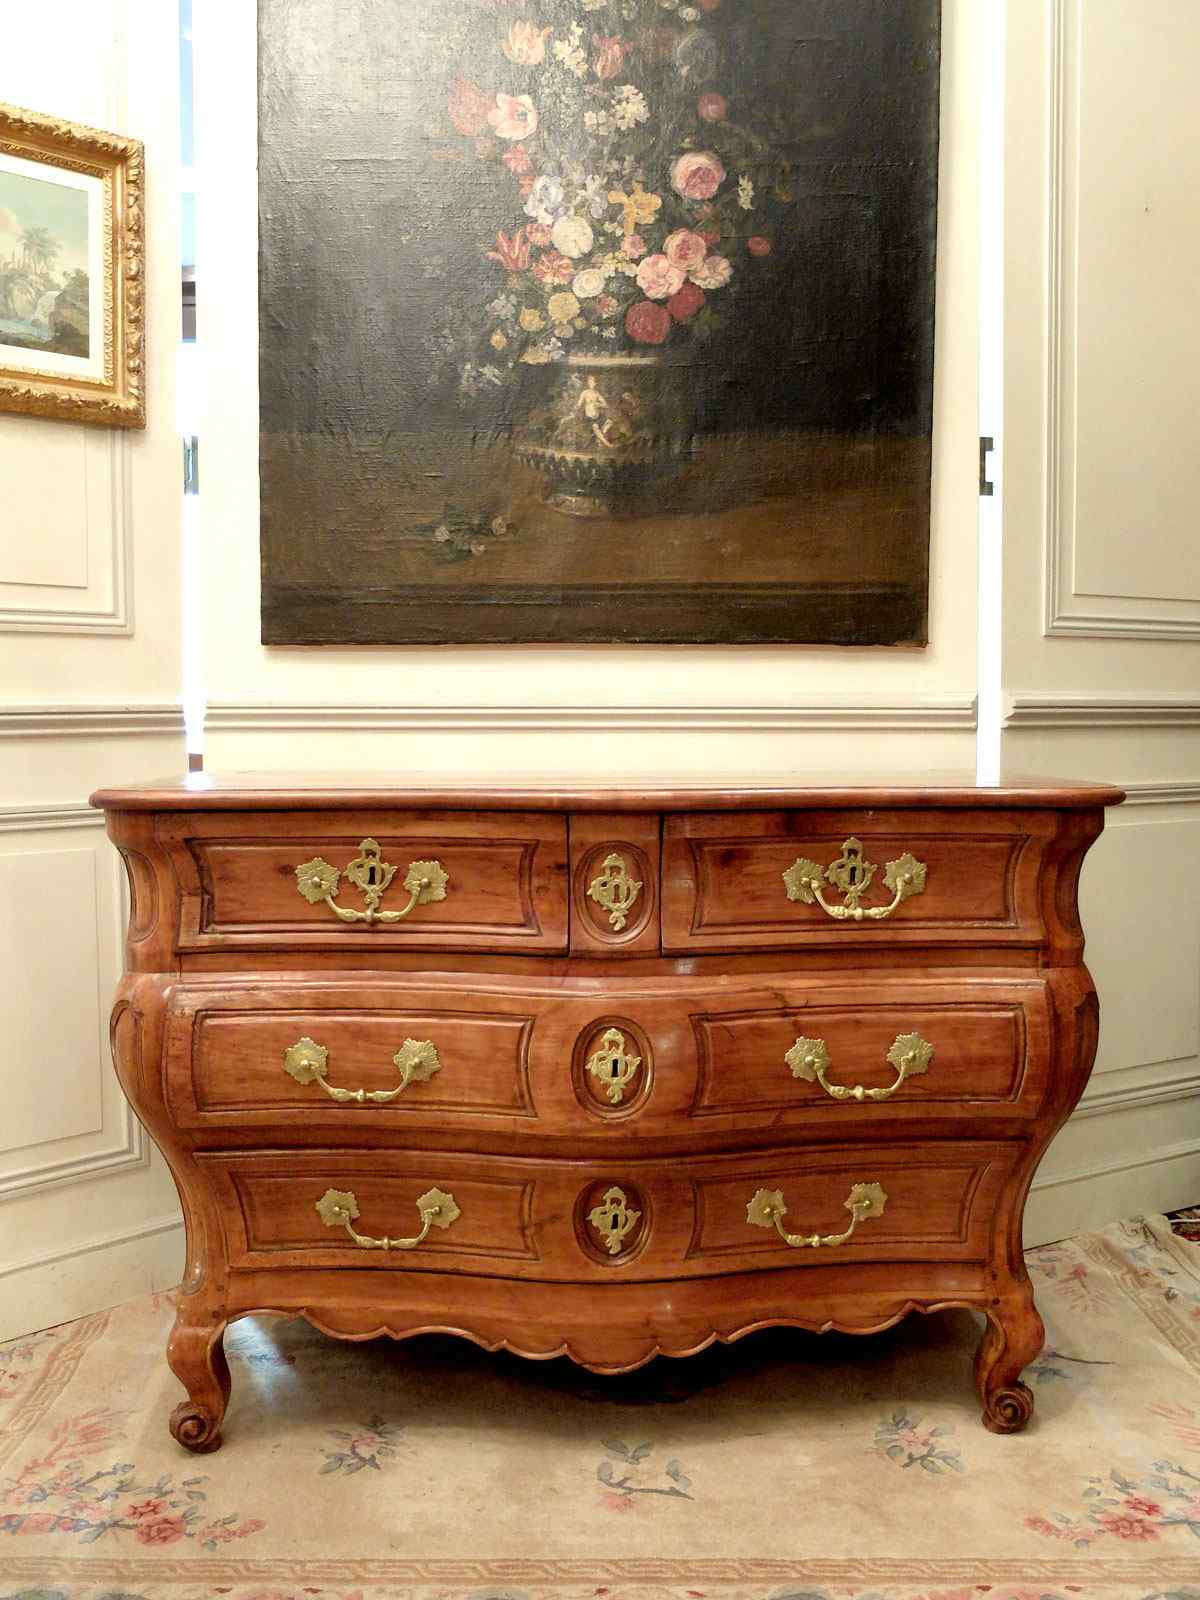 Commode d'époque Louis XV du sud-ouest de la France